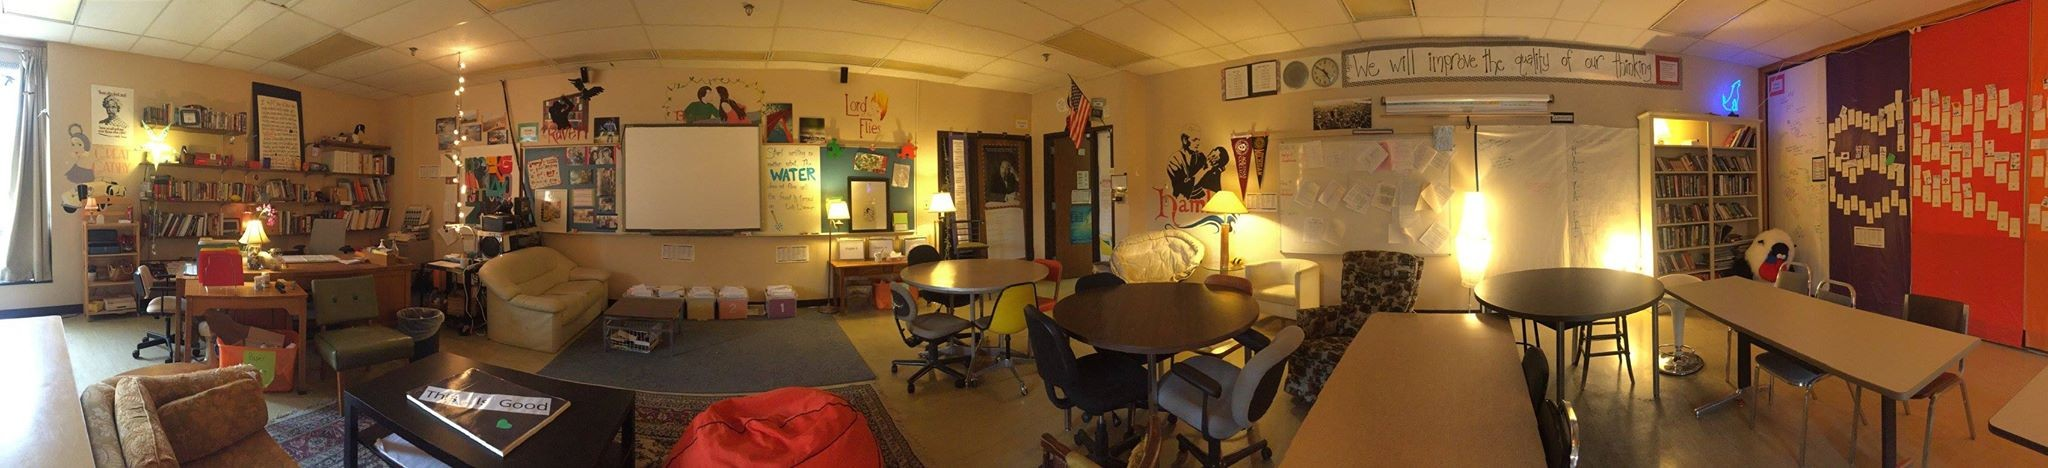 Classroom Eye Candy 1 A Flexible Seating Paradise Cult